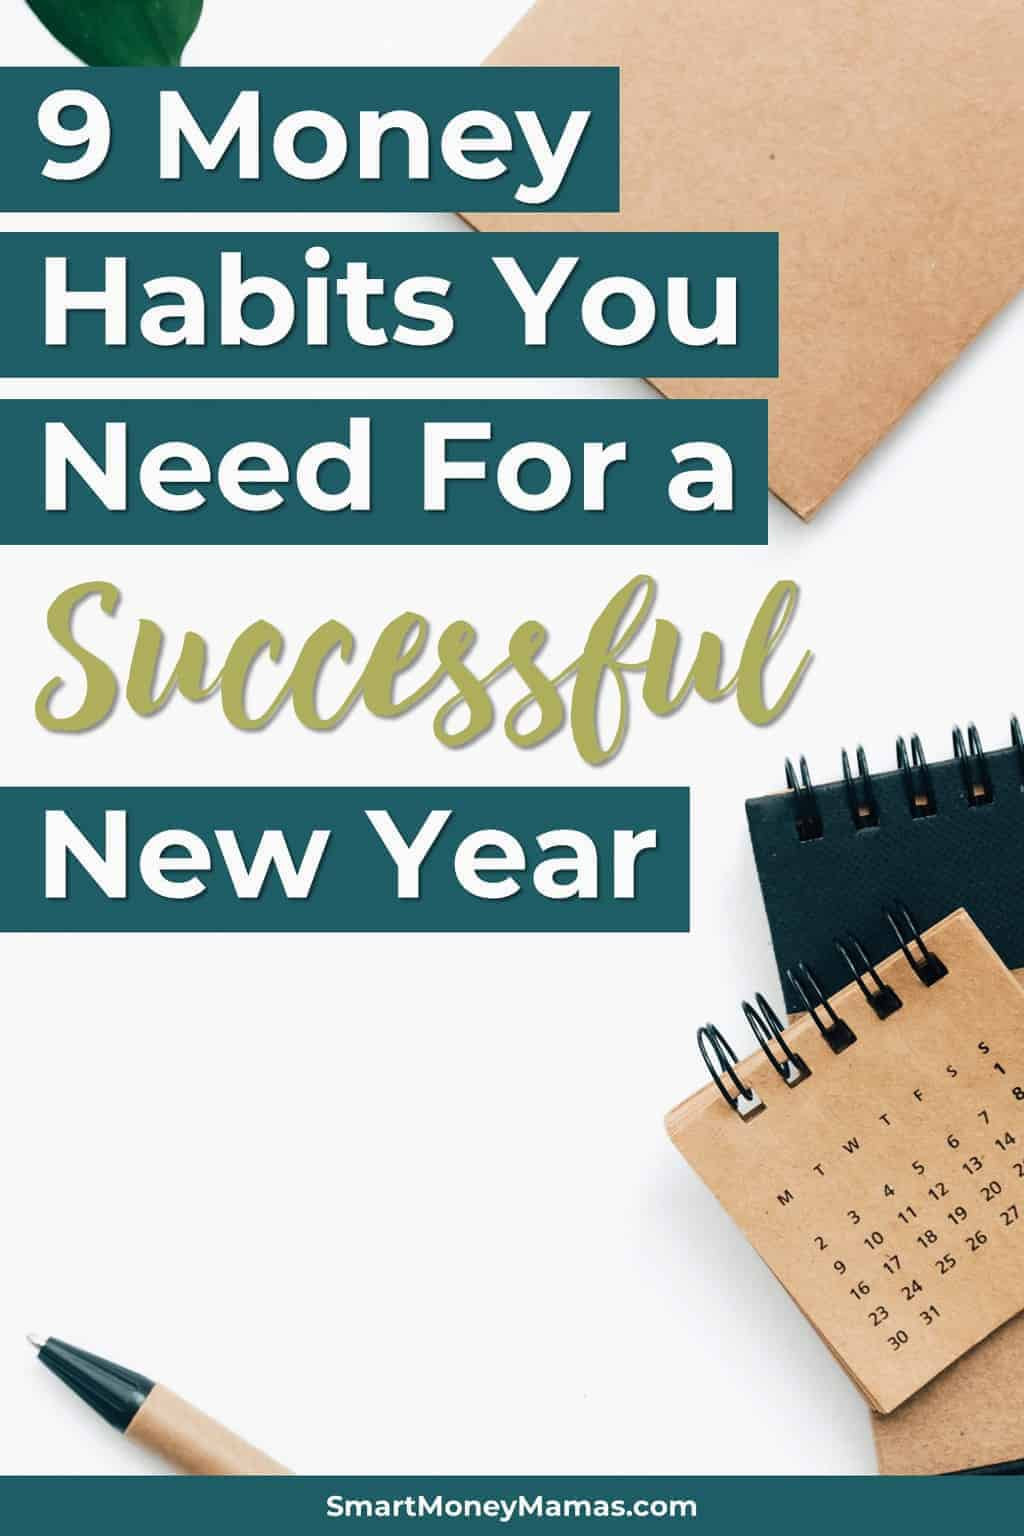 Need to make these habits a part of my life if I want to make 2019 my best financial year yet! Printing this frugal thinking chart and working to save more money and get out of debt! #newyears #resolutions #newyearsresolutions #savemoney #moneytips